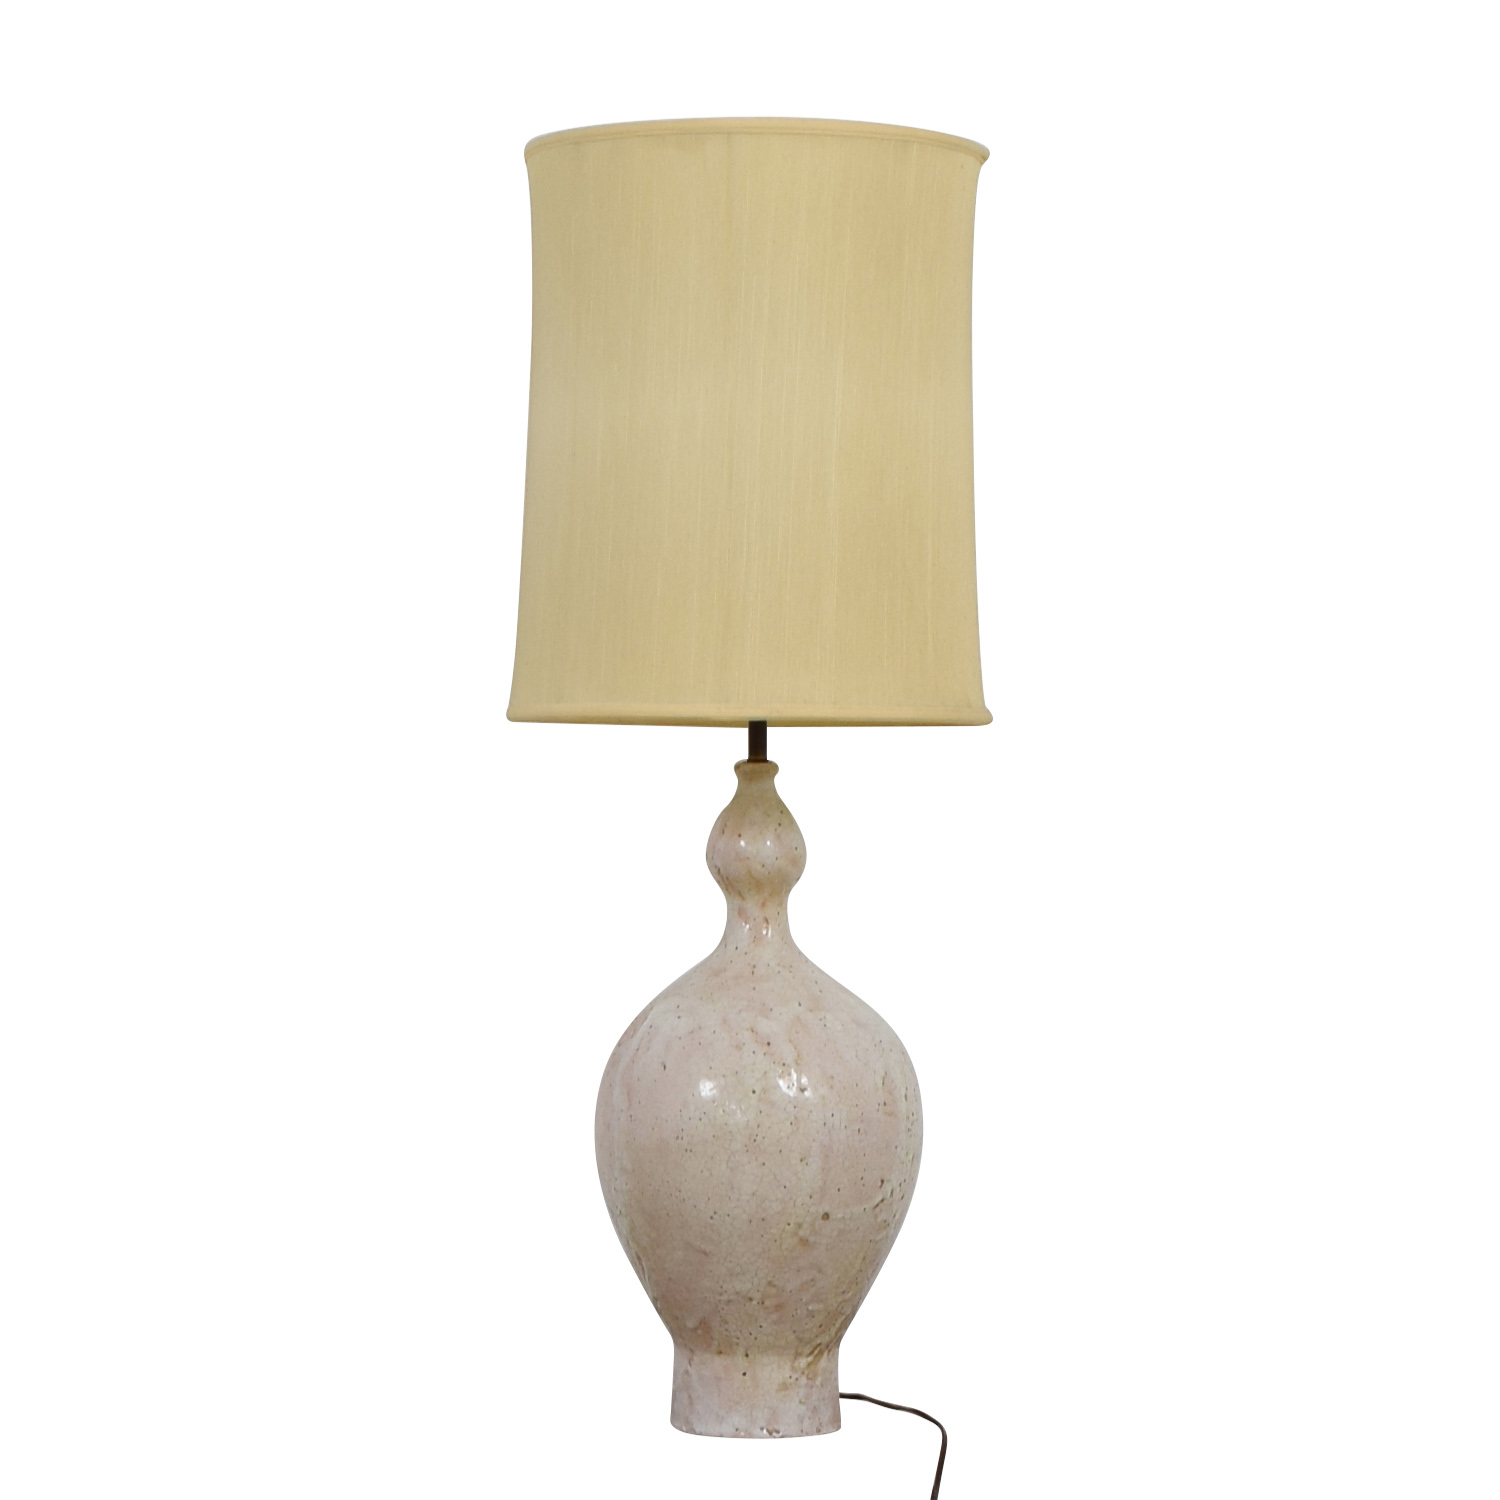 buy Vintage White Ceramic Lamp